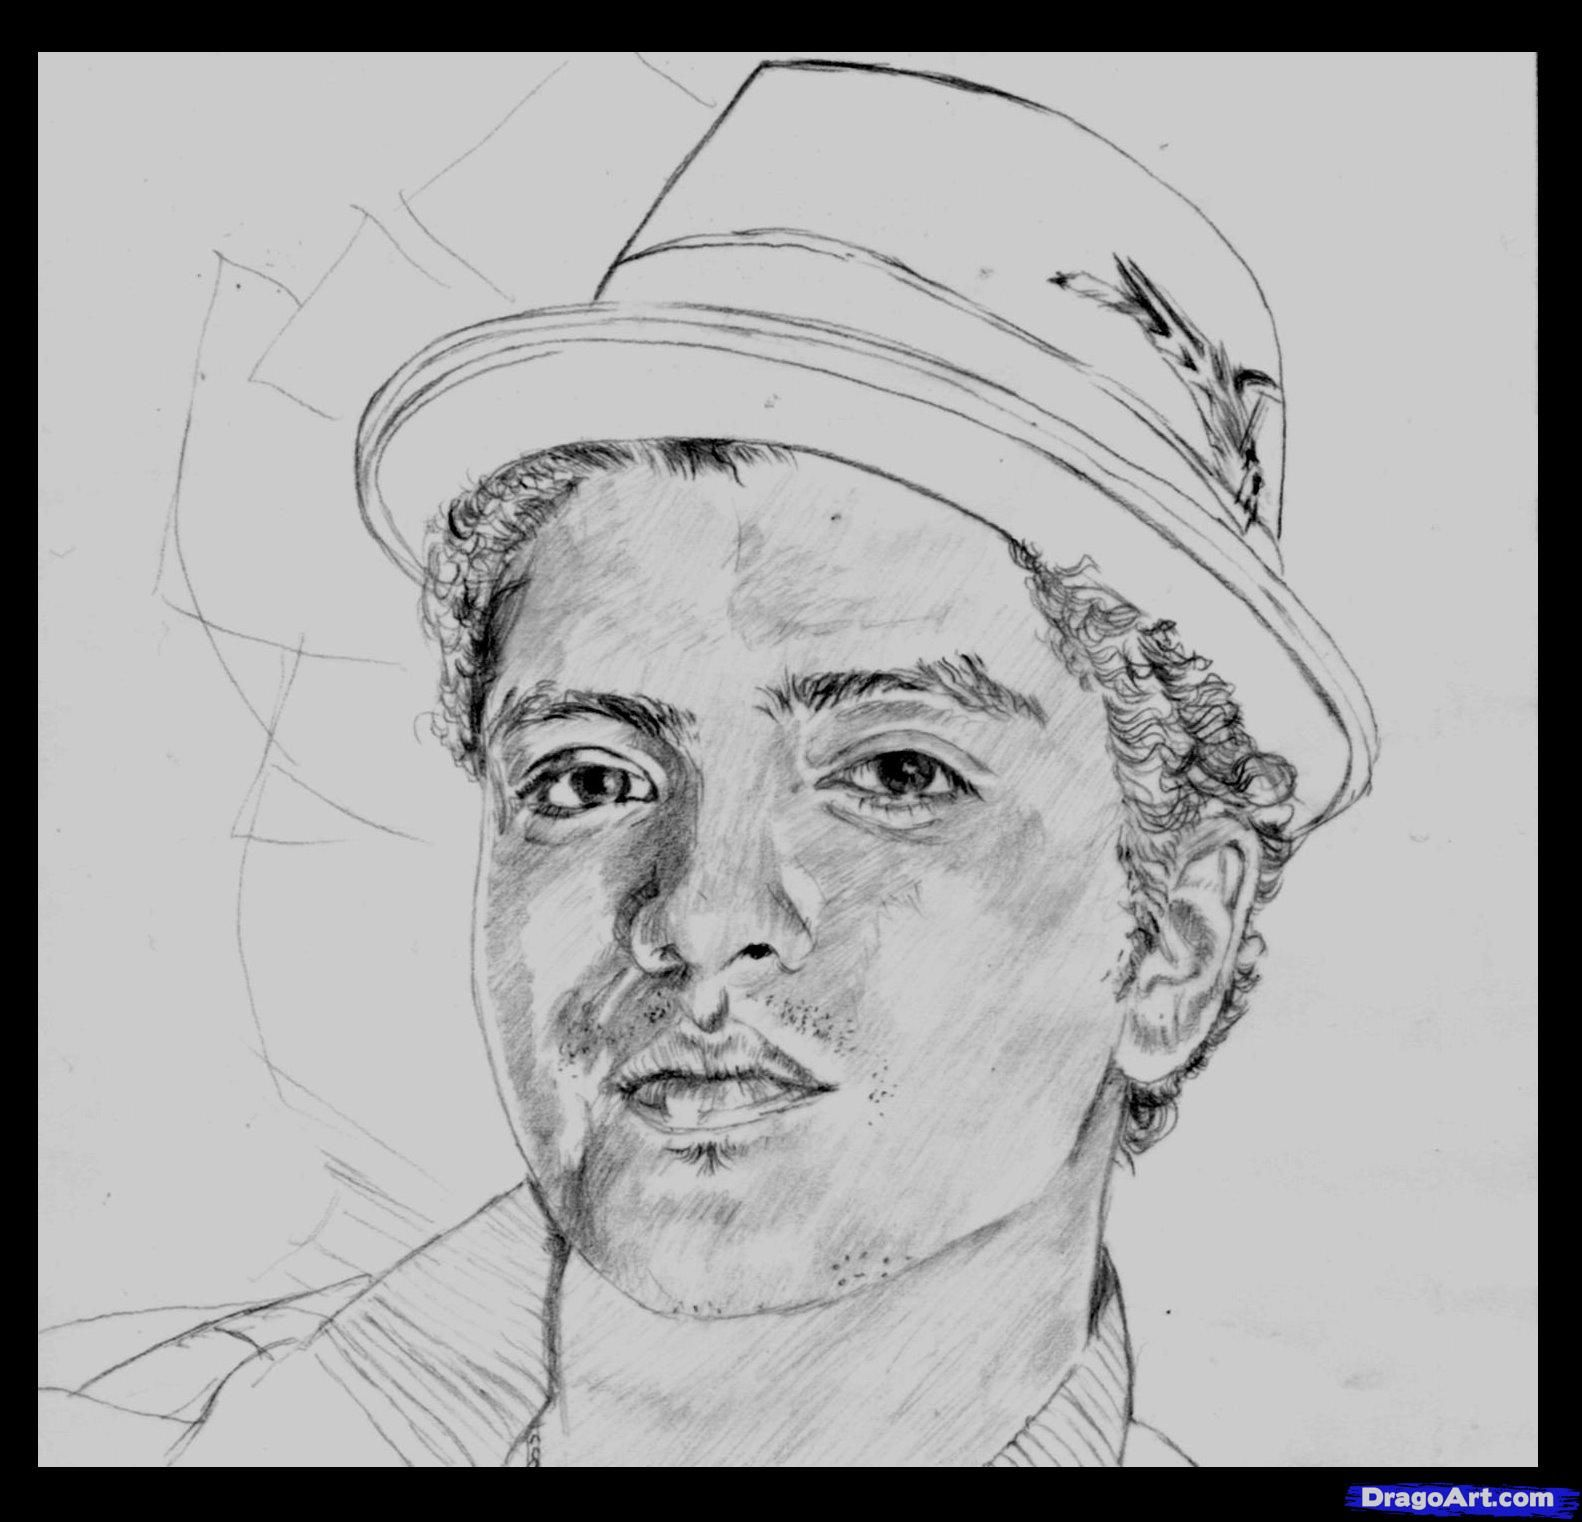 How to draw Bruno Mars's portrait with a pencil step by step